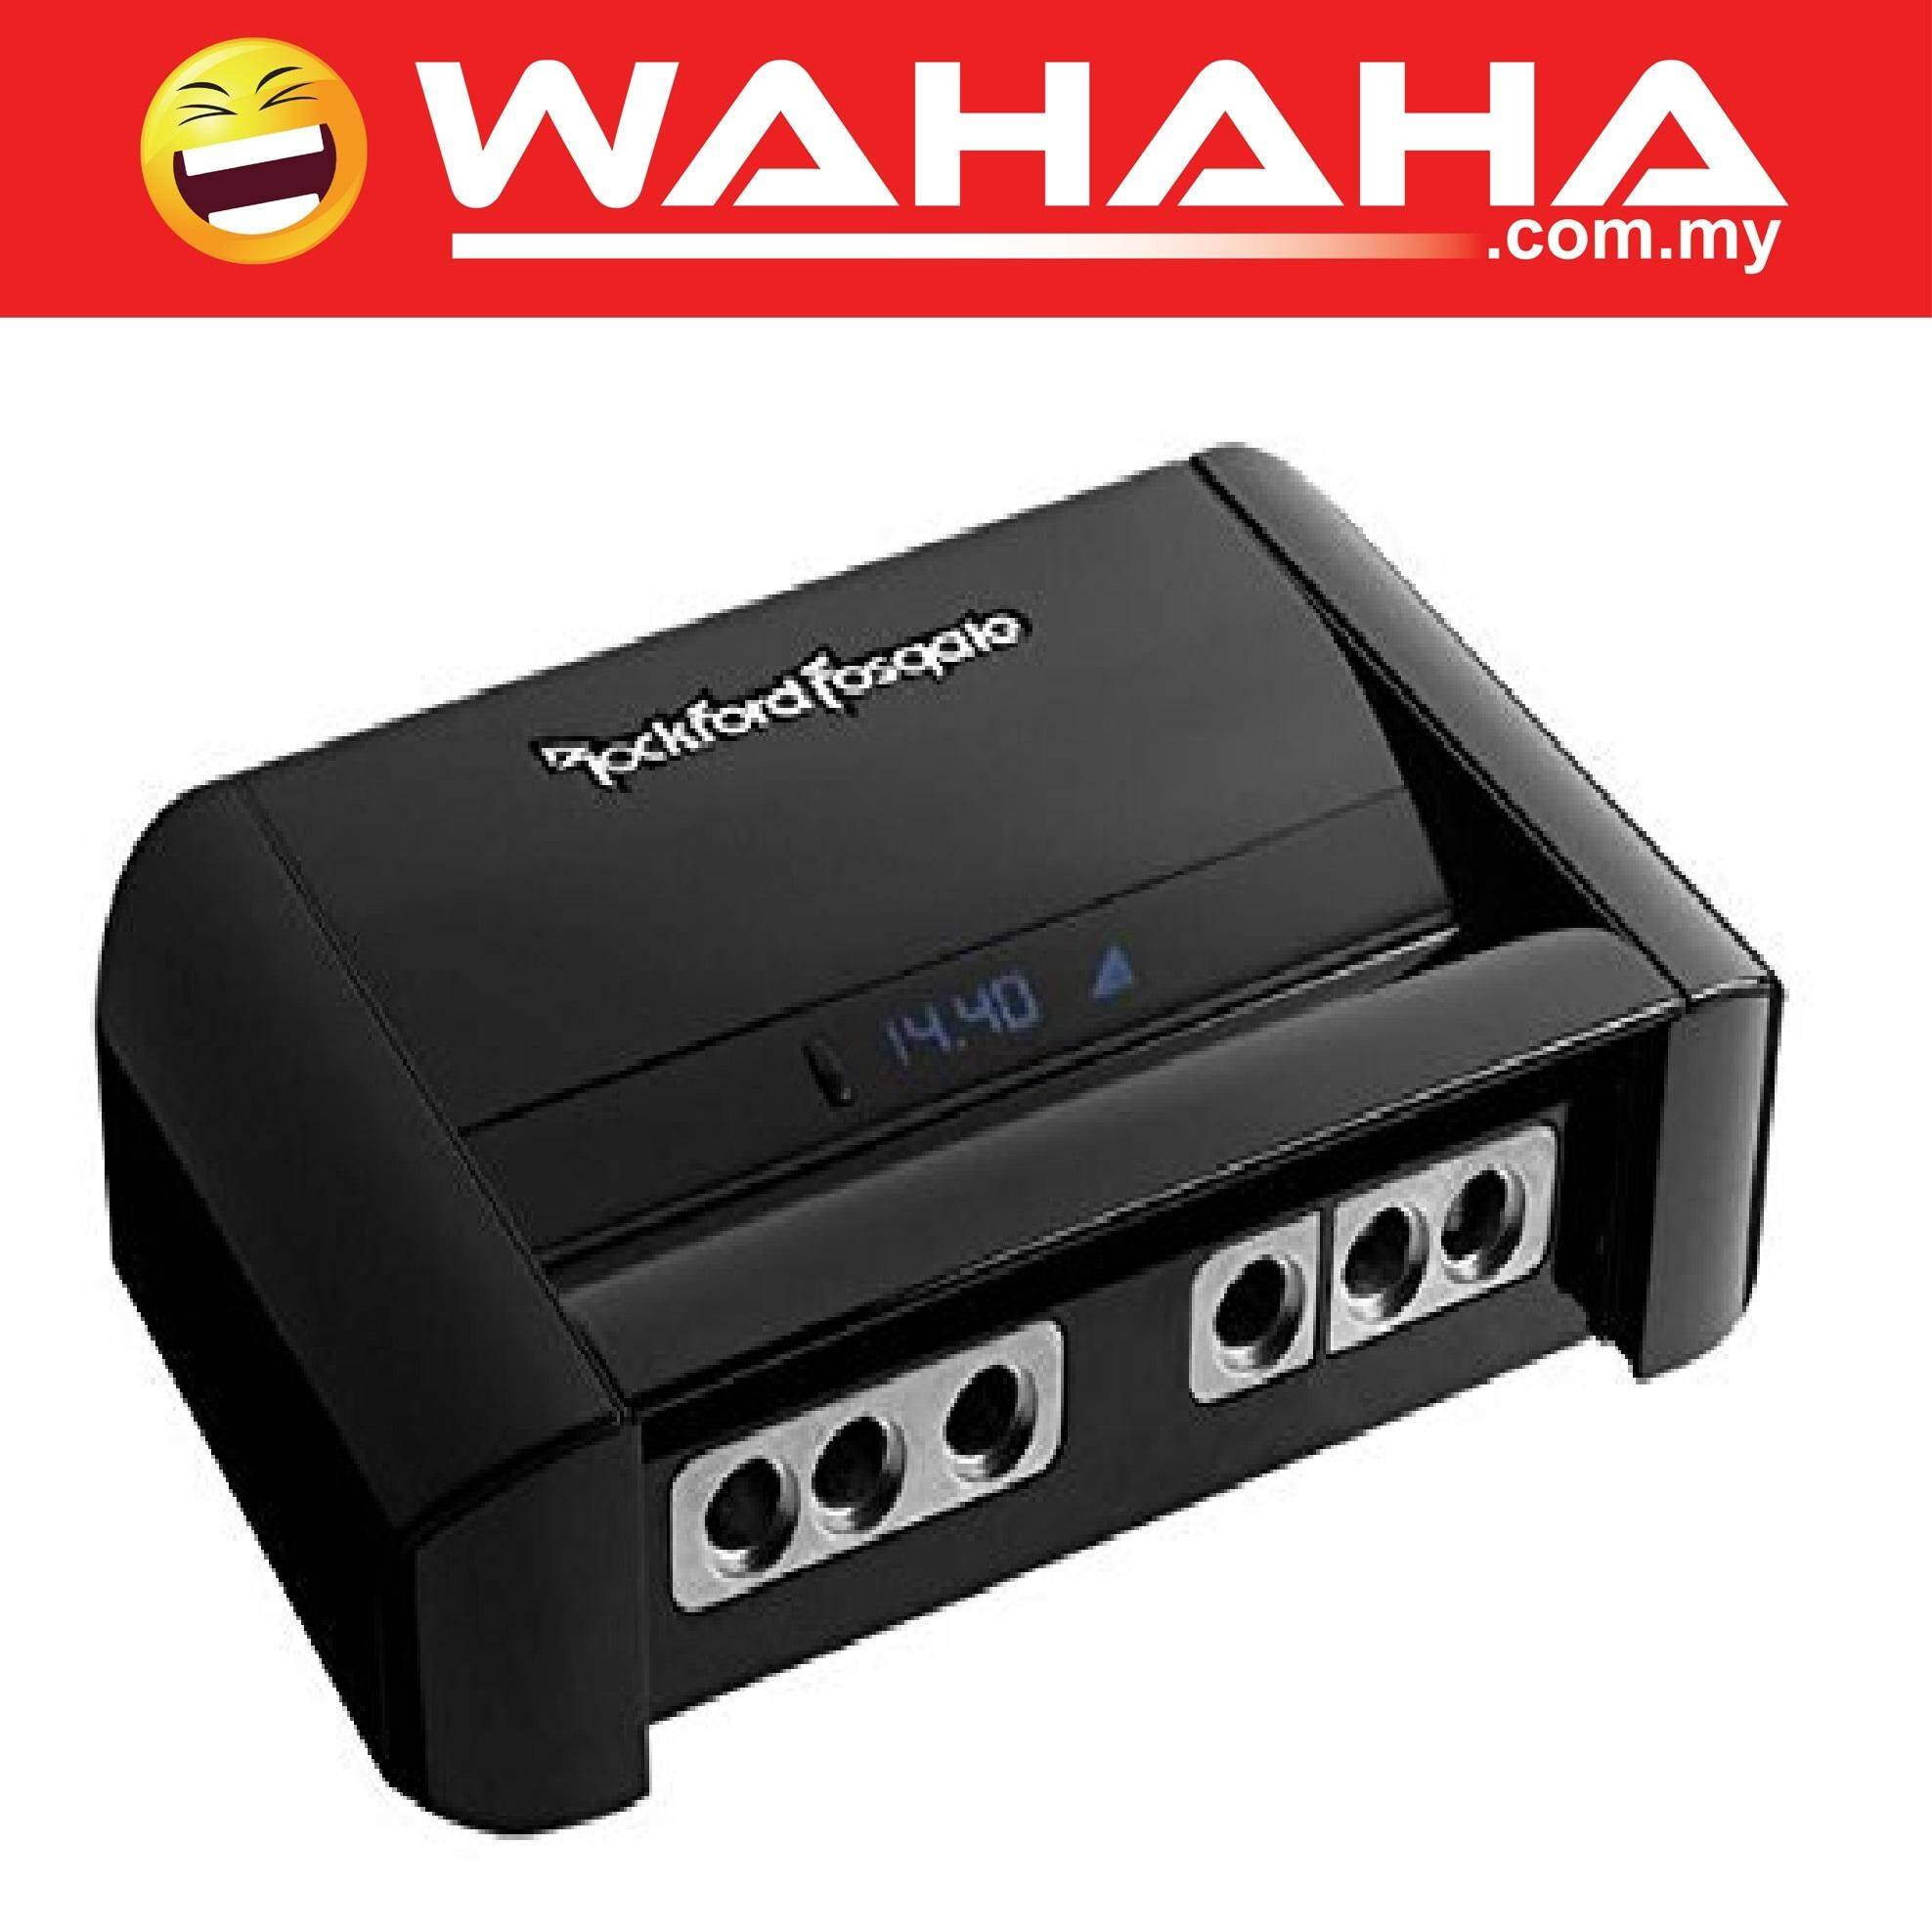 Rockford Fosgate Buy At Best Price In Malaysia R600x5 600w 5 Channel Amplifier With Wiring Kit Rfc10hb 10 Farad Hybrid Digital Capacitor